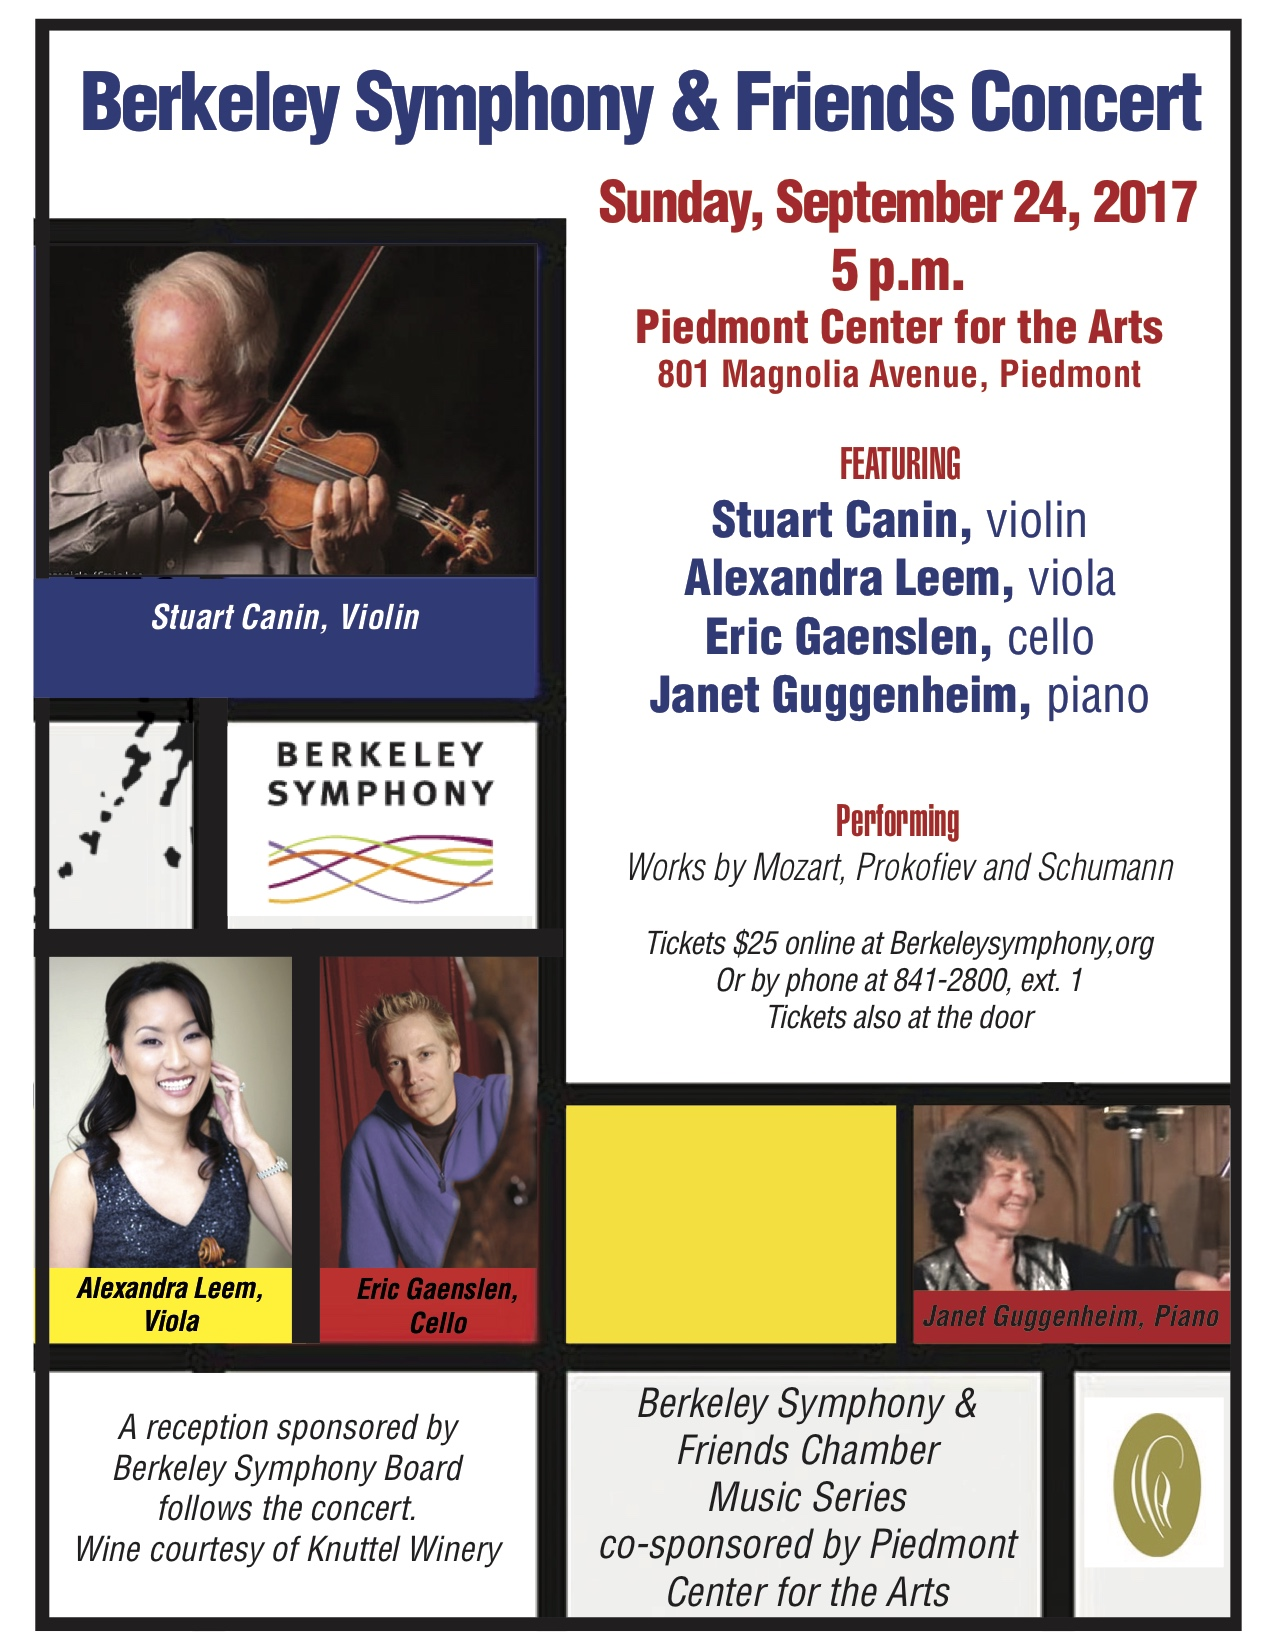 Tickets Available at      https://tickets.berkeleysymphony.org/TheatreManager/1/online?performance=410